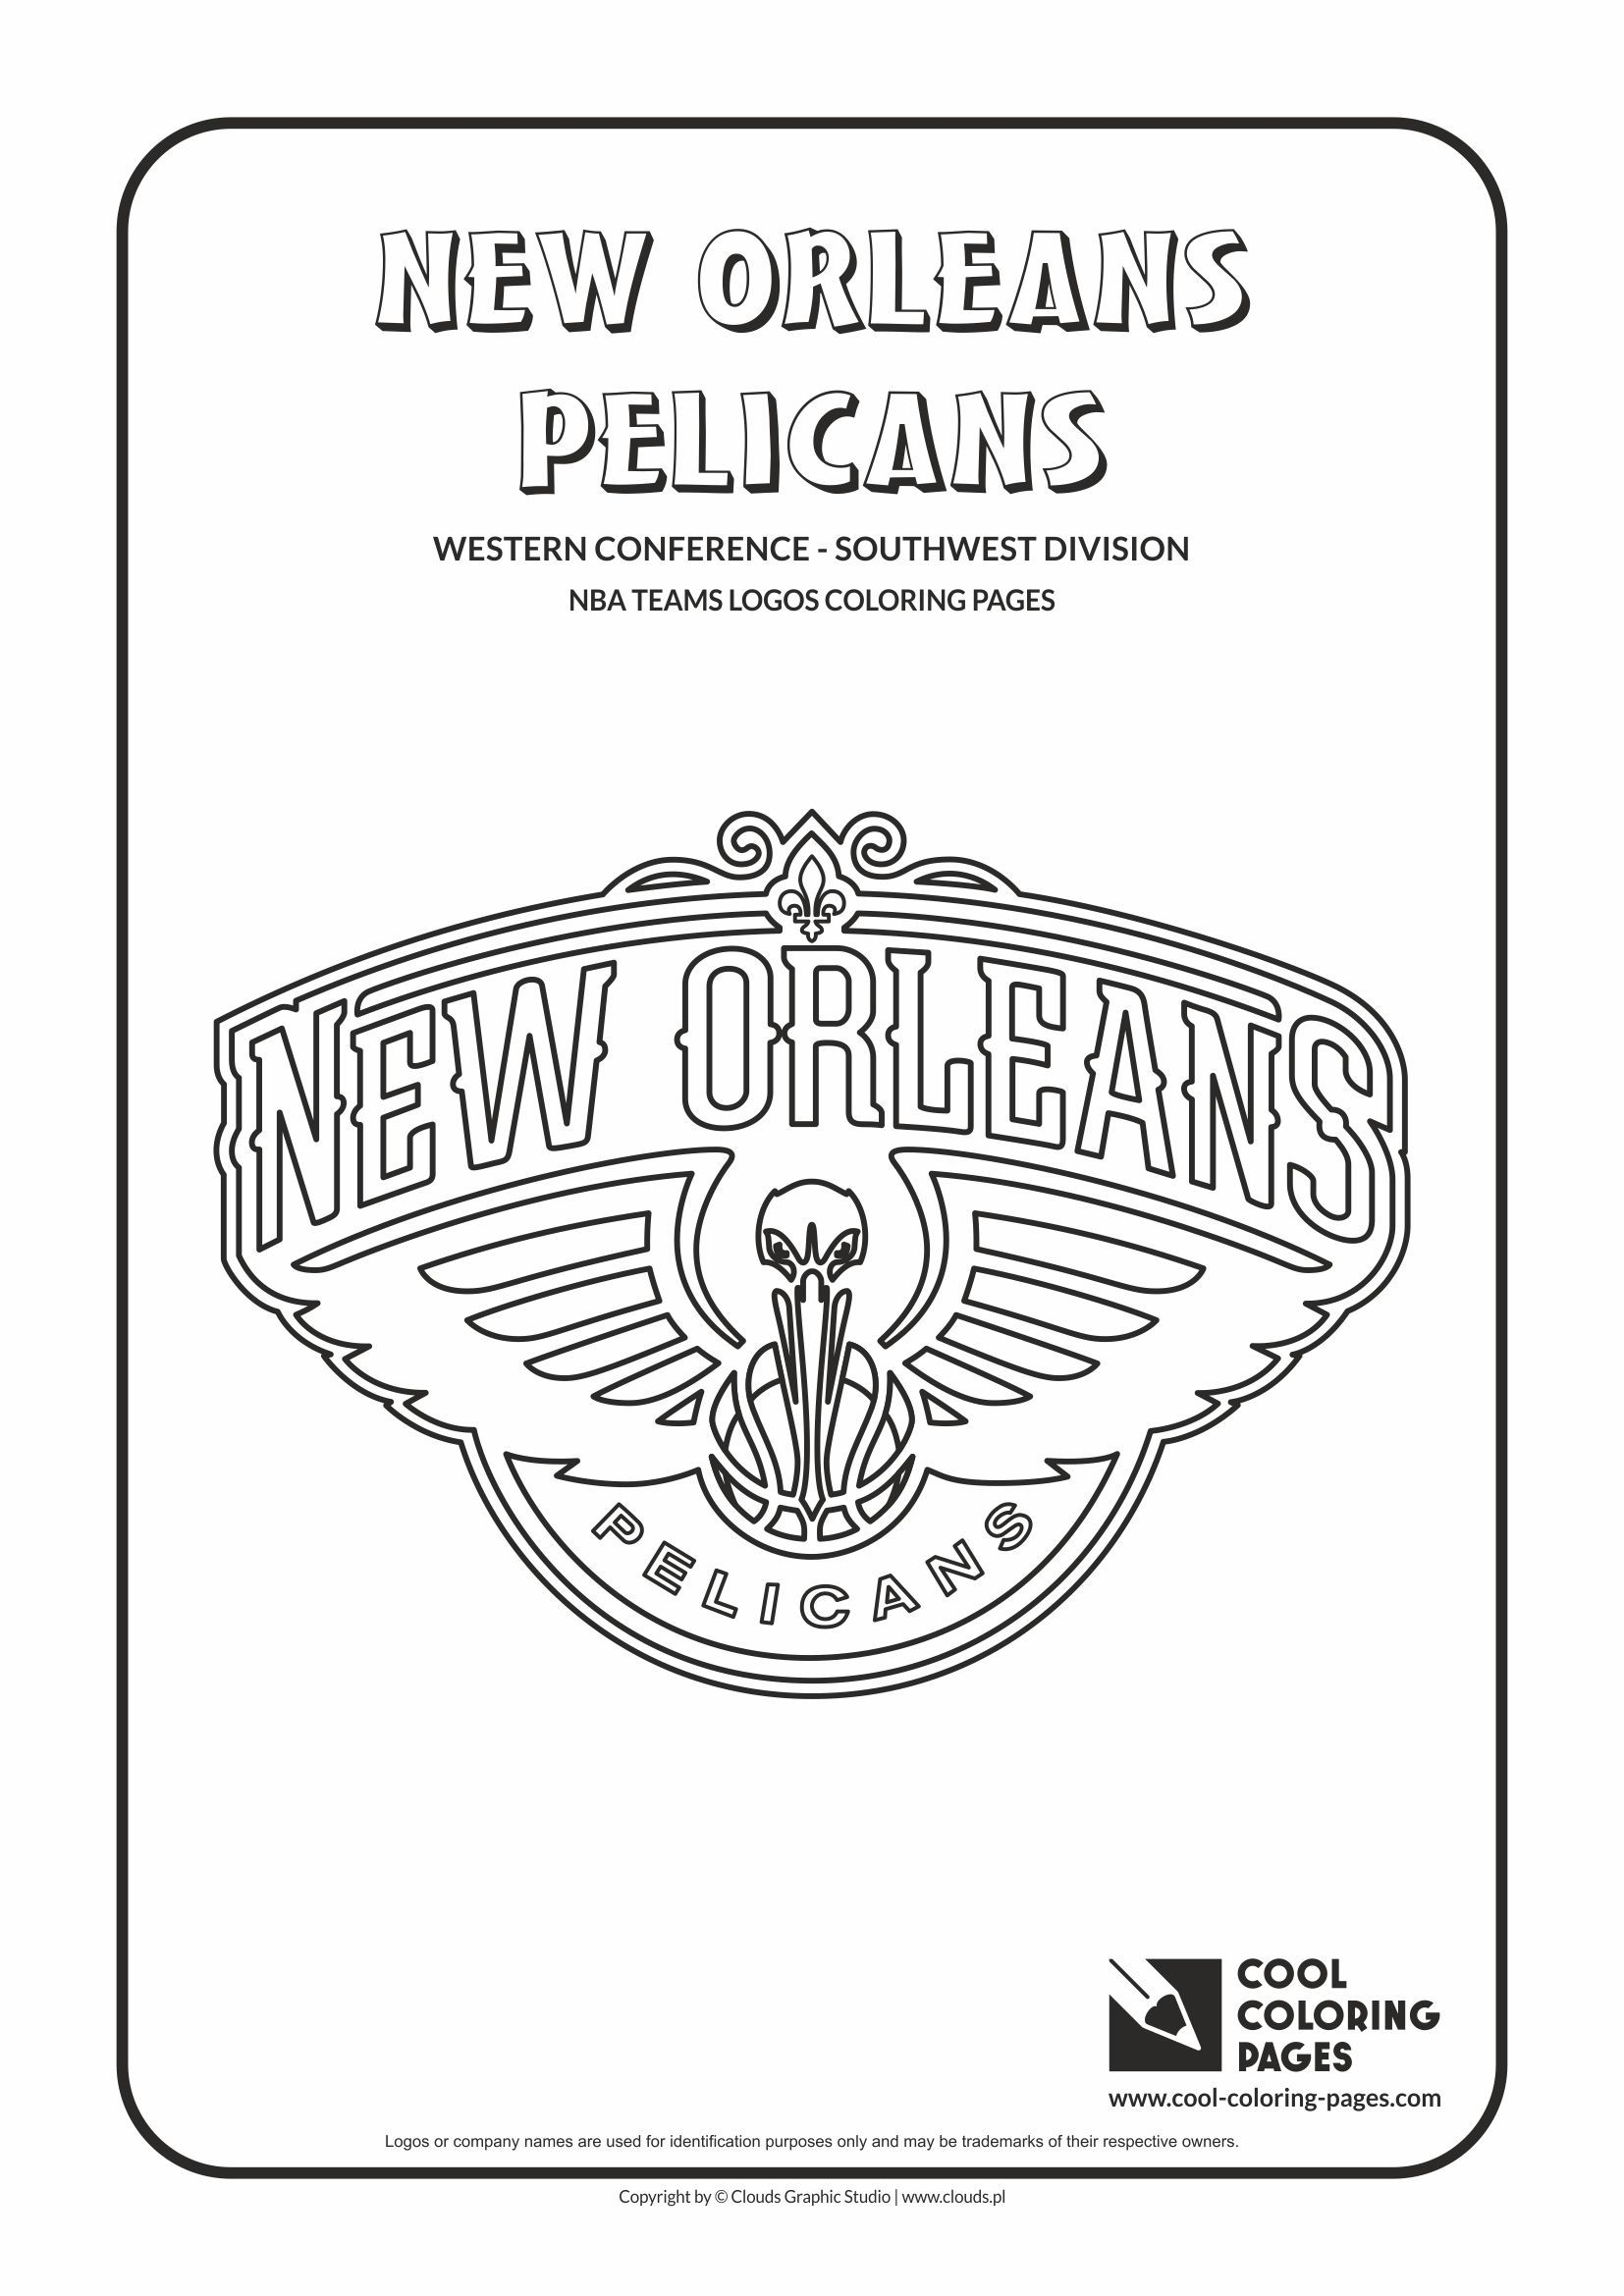 New Orleans Pelicans Nba Basketball Teams Logos Coloring Pages